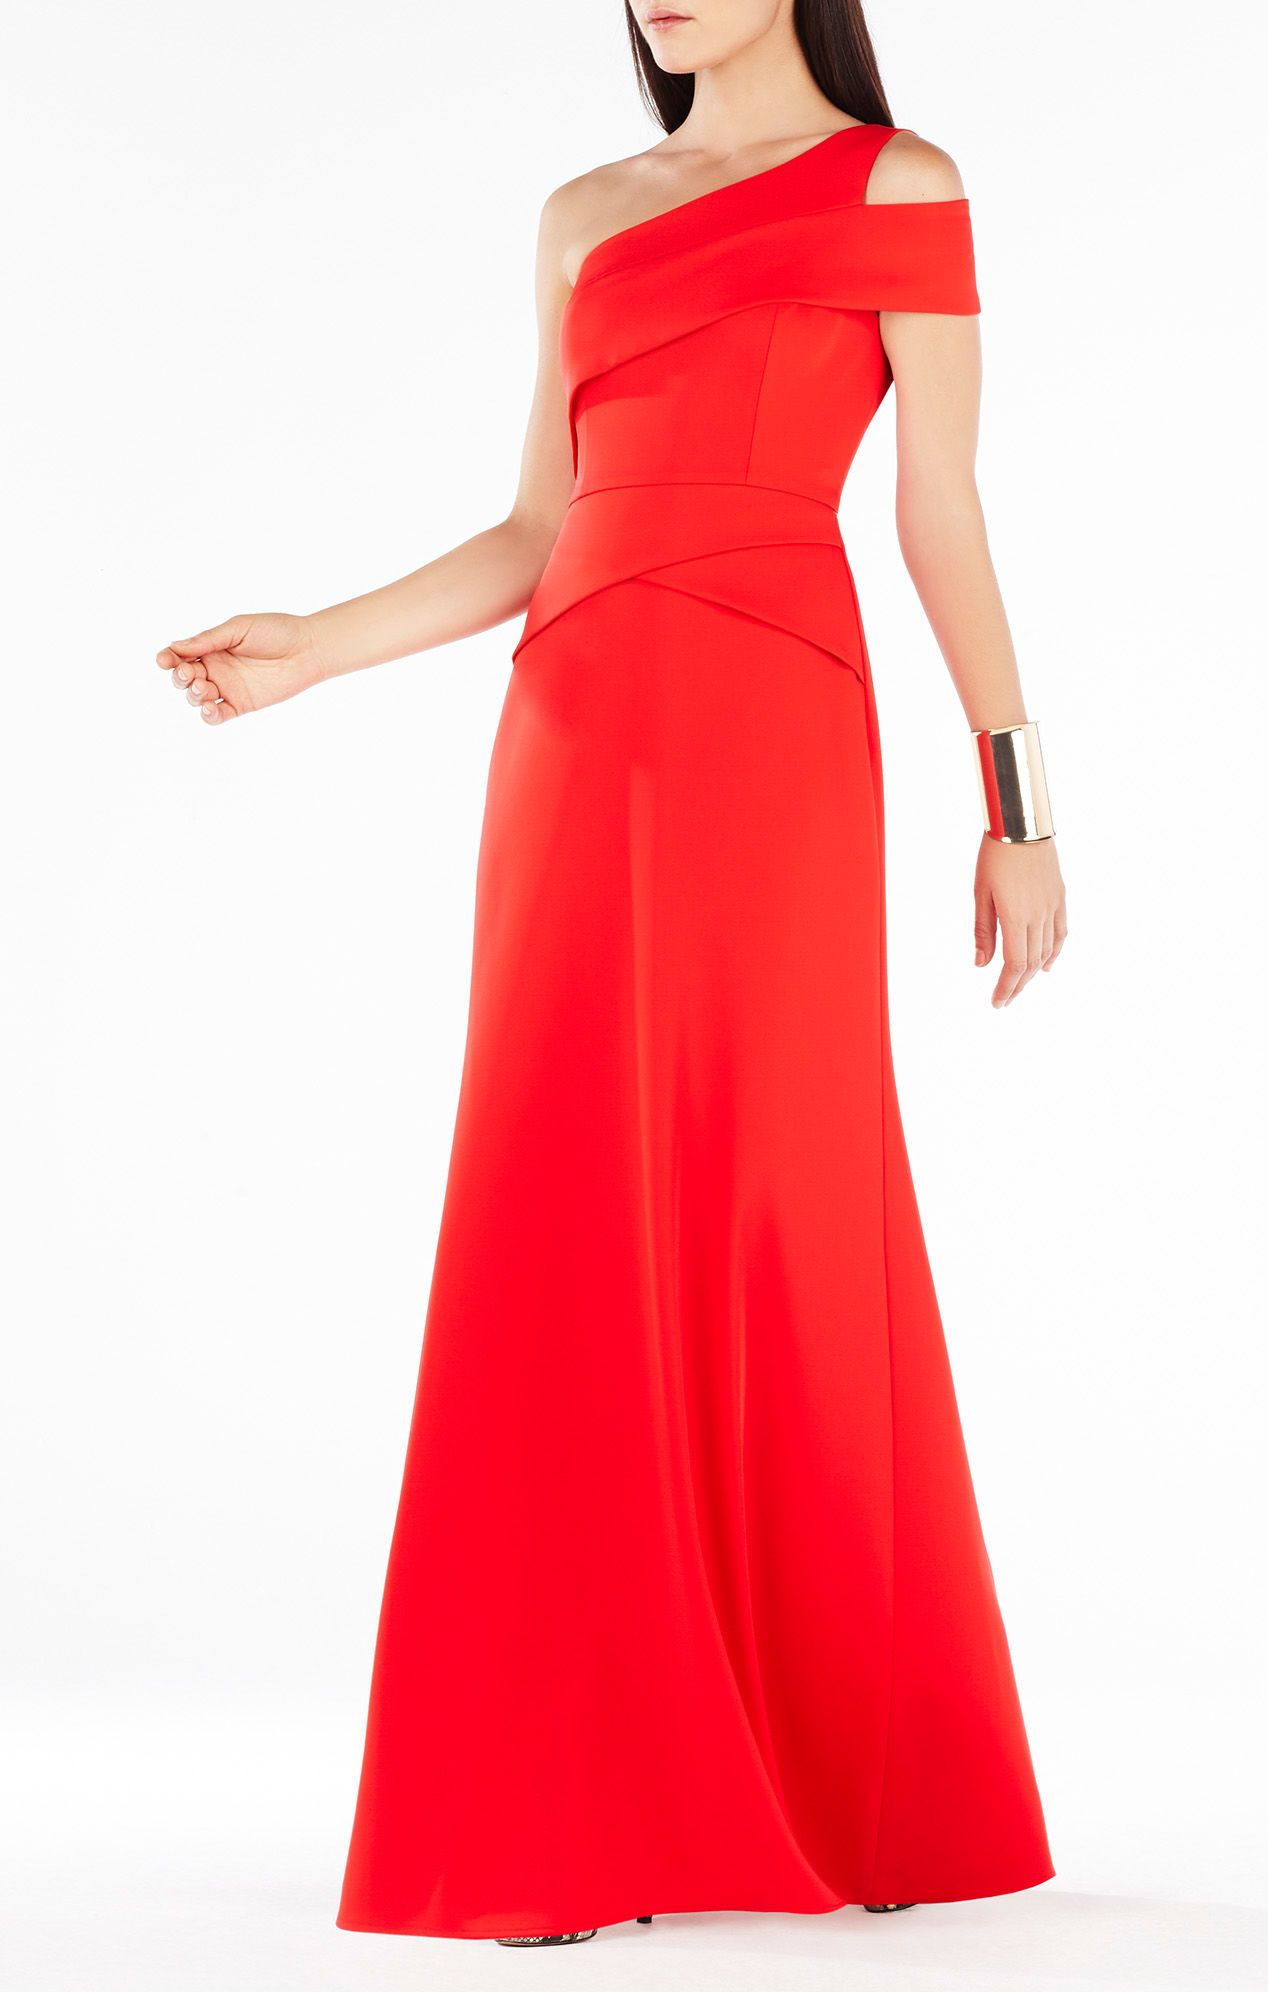 Annely One-Shoulder Peplum Gown   Ropa   Pinterest   Peplum gown ...